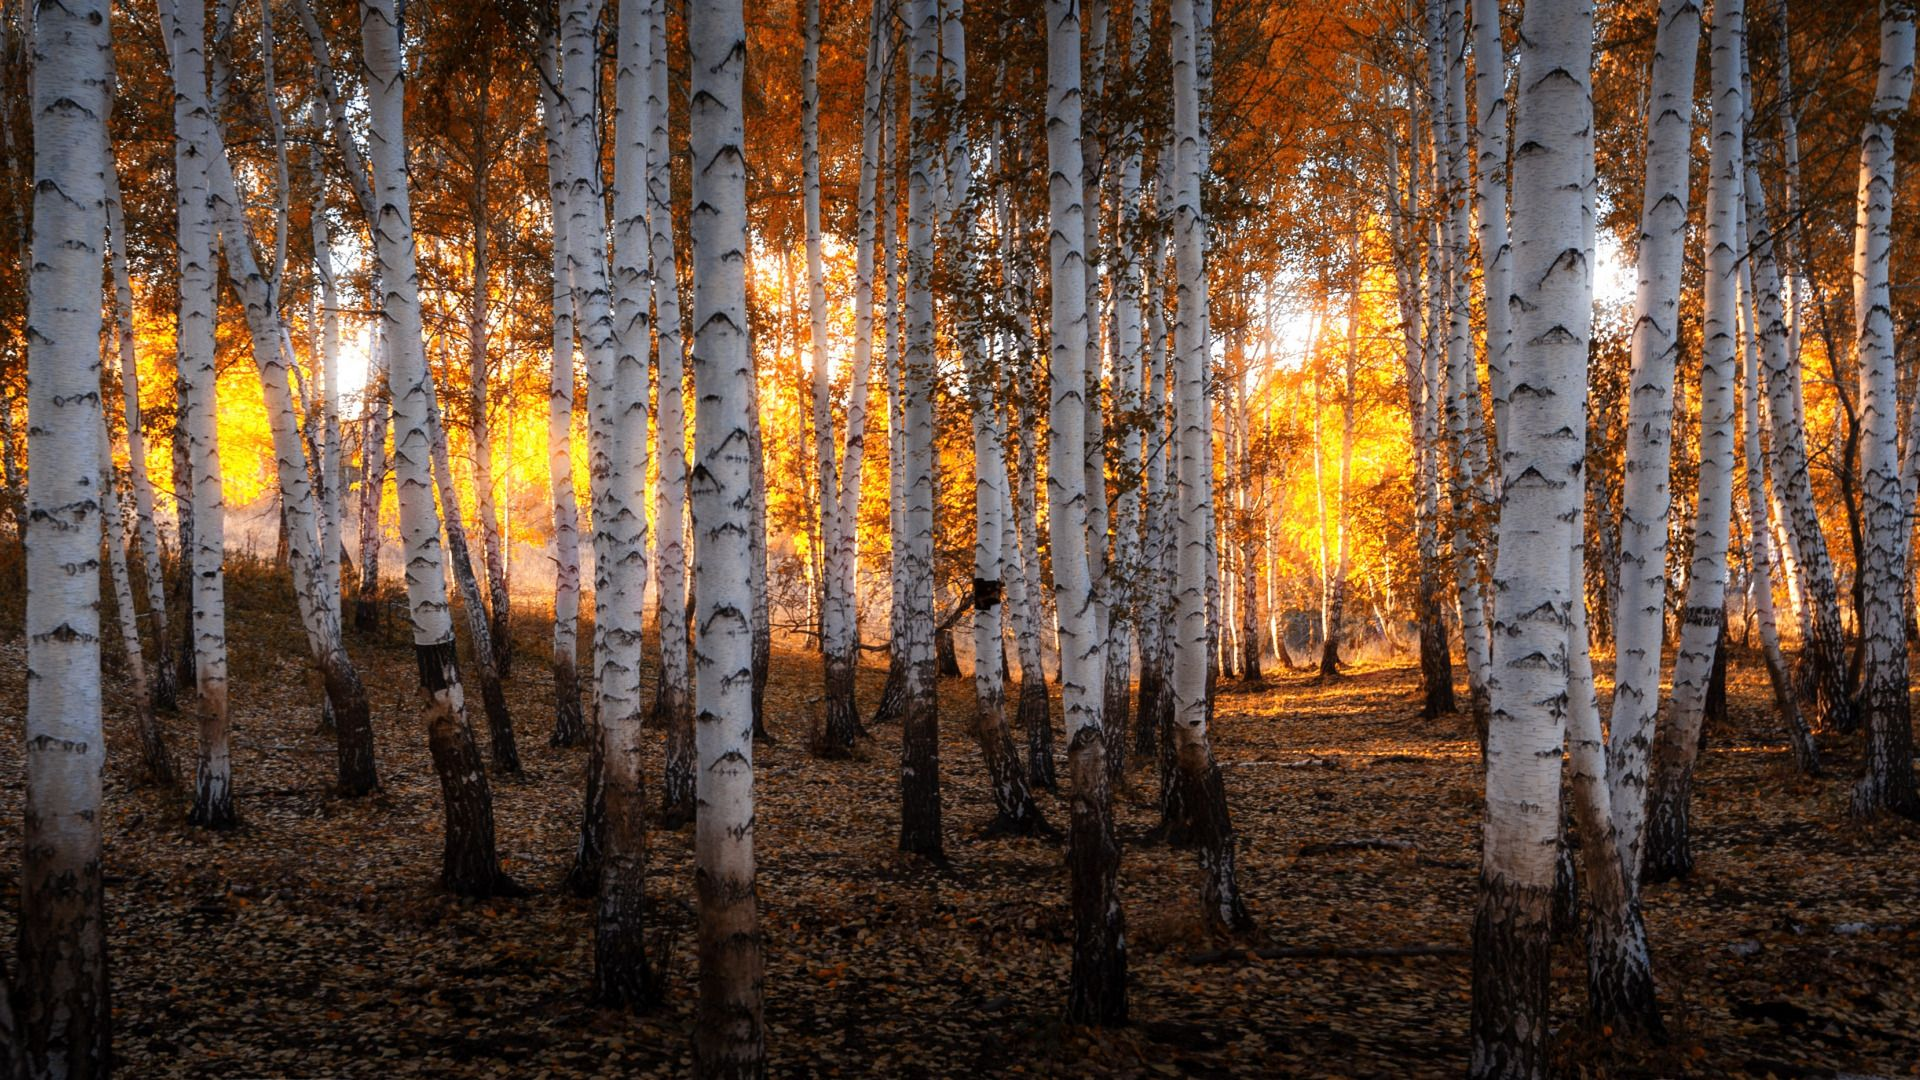 Autumn Birch Photo